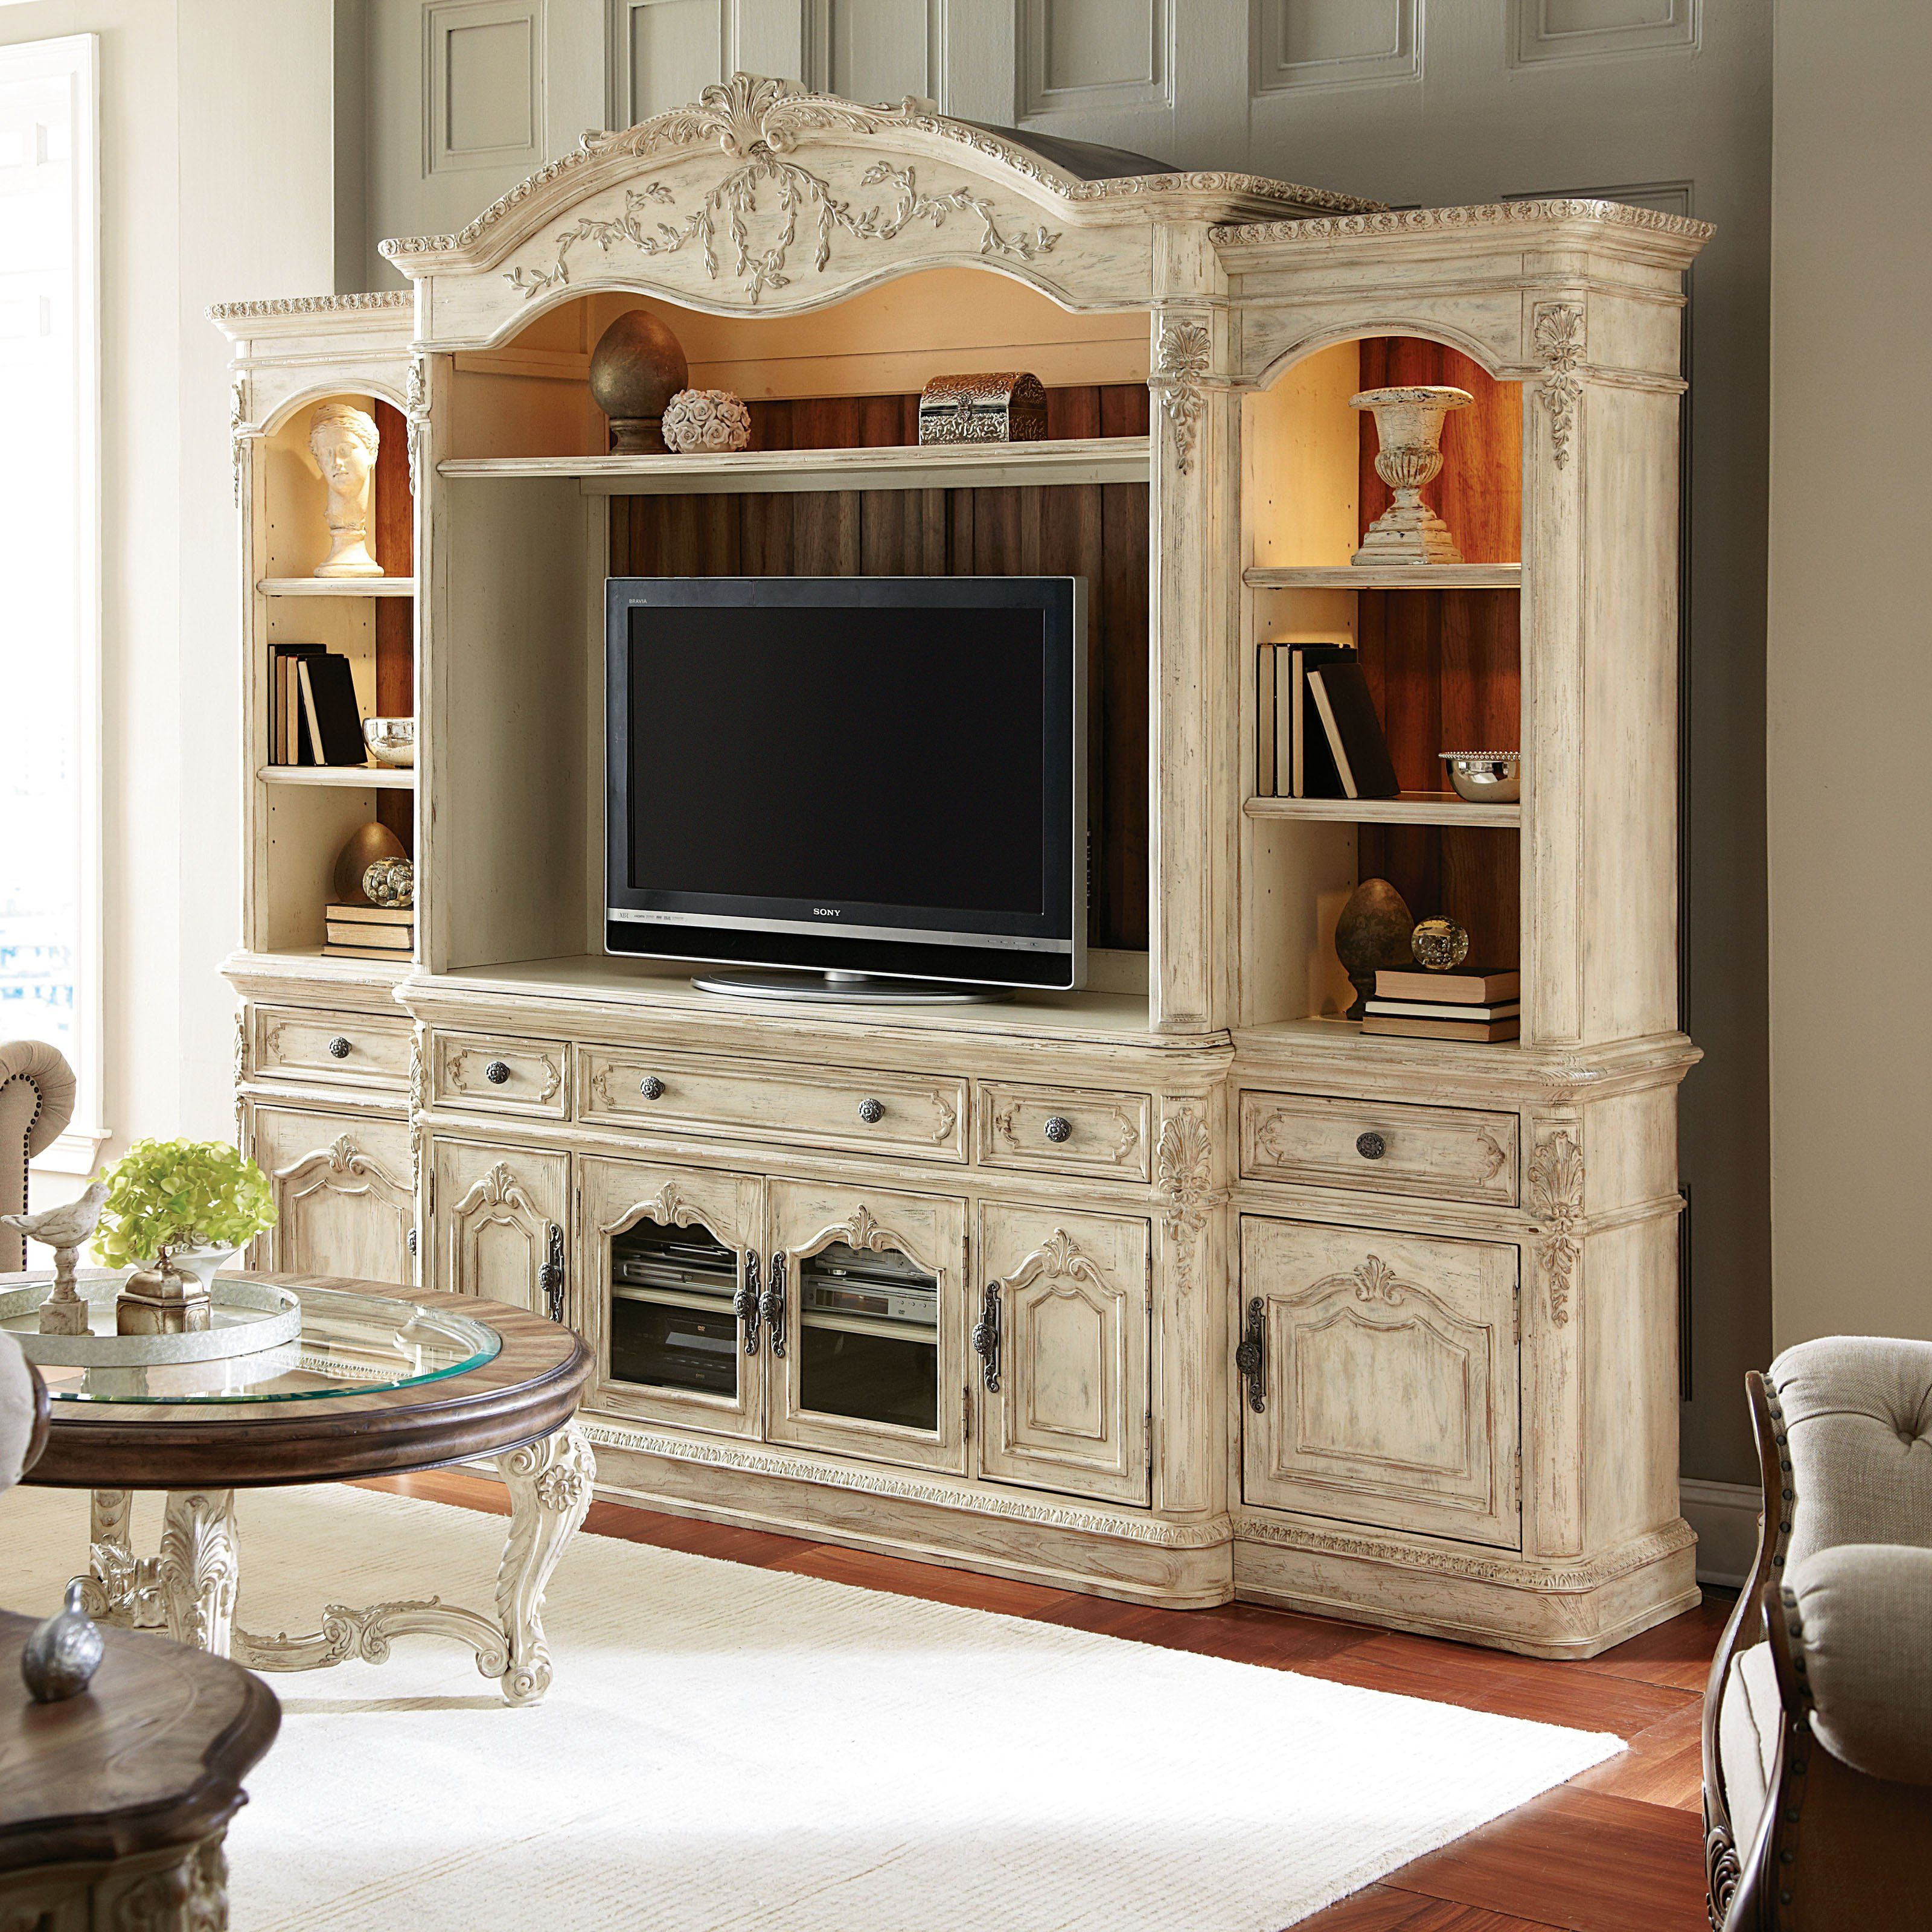 room mwd home console furniture entertainment cupboard iteminformation hooker curata